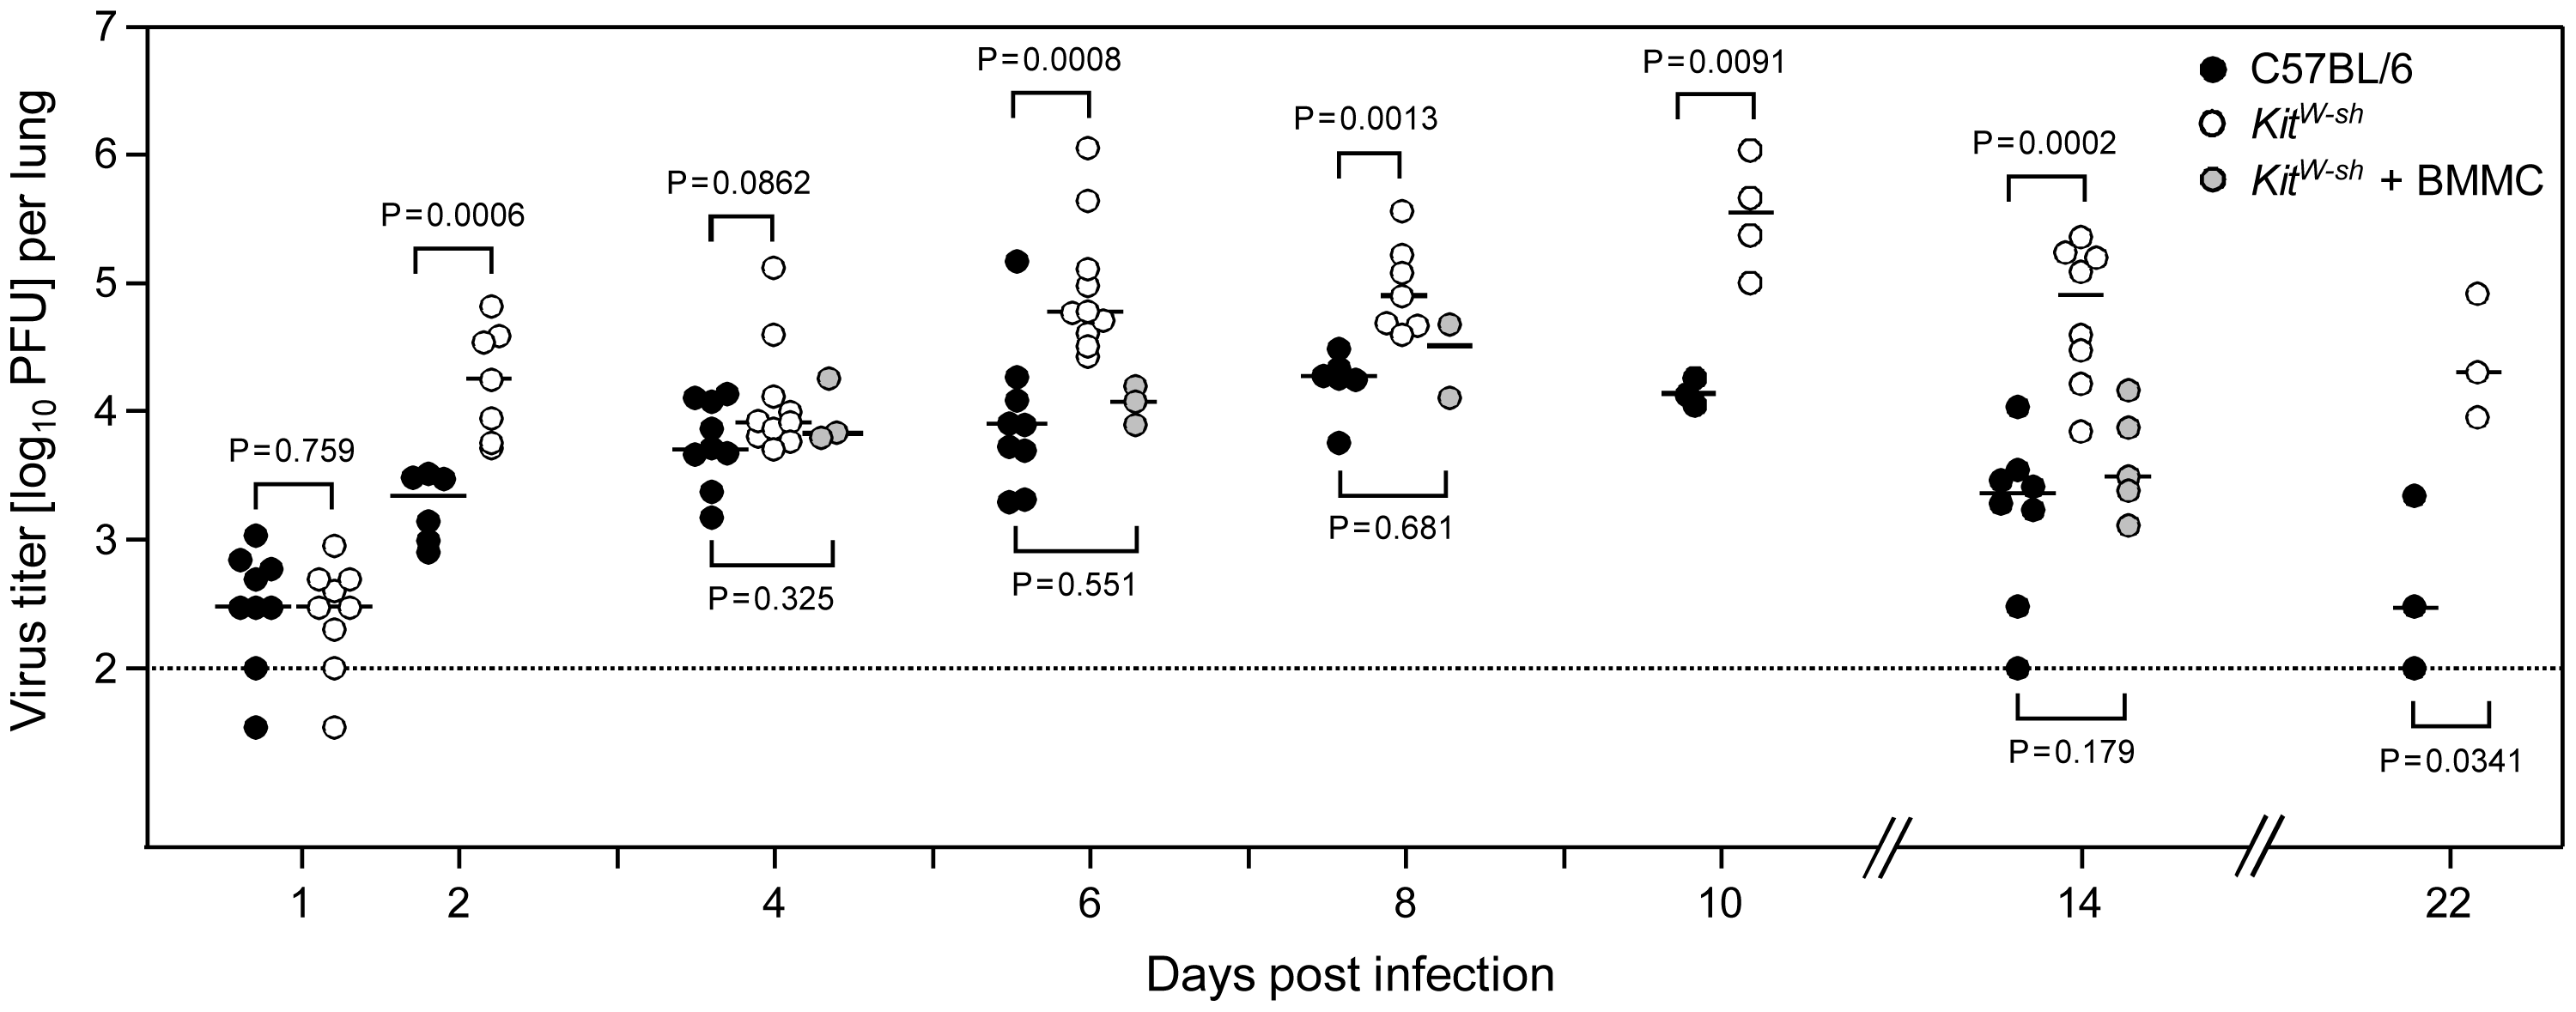 Enhanced virus replication and delayed clearance of productive infection in the lungs associated with MC deficiency are reversed by MC reconstitution.